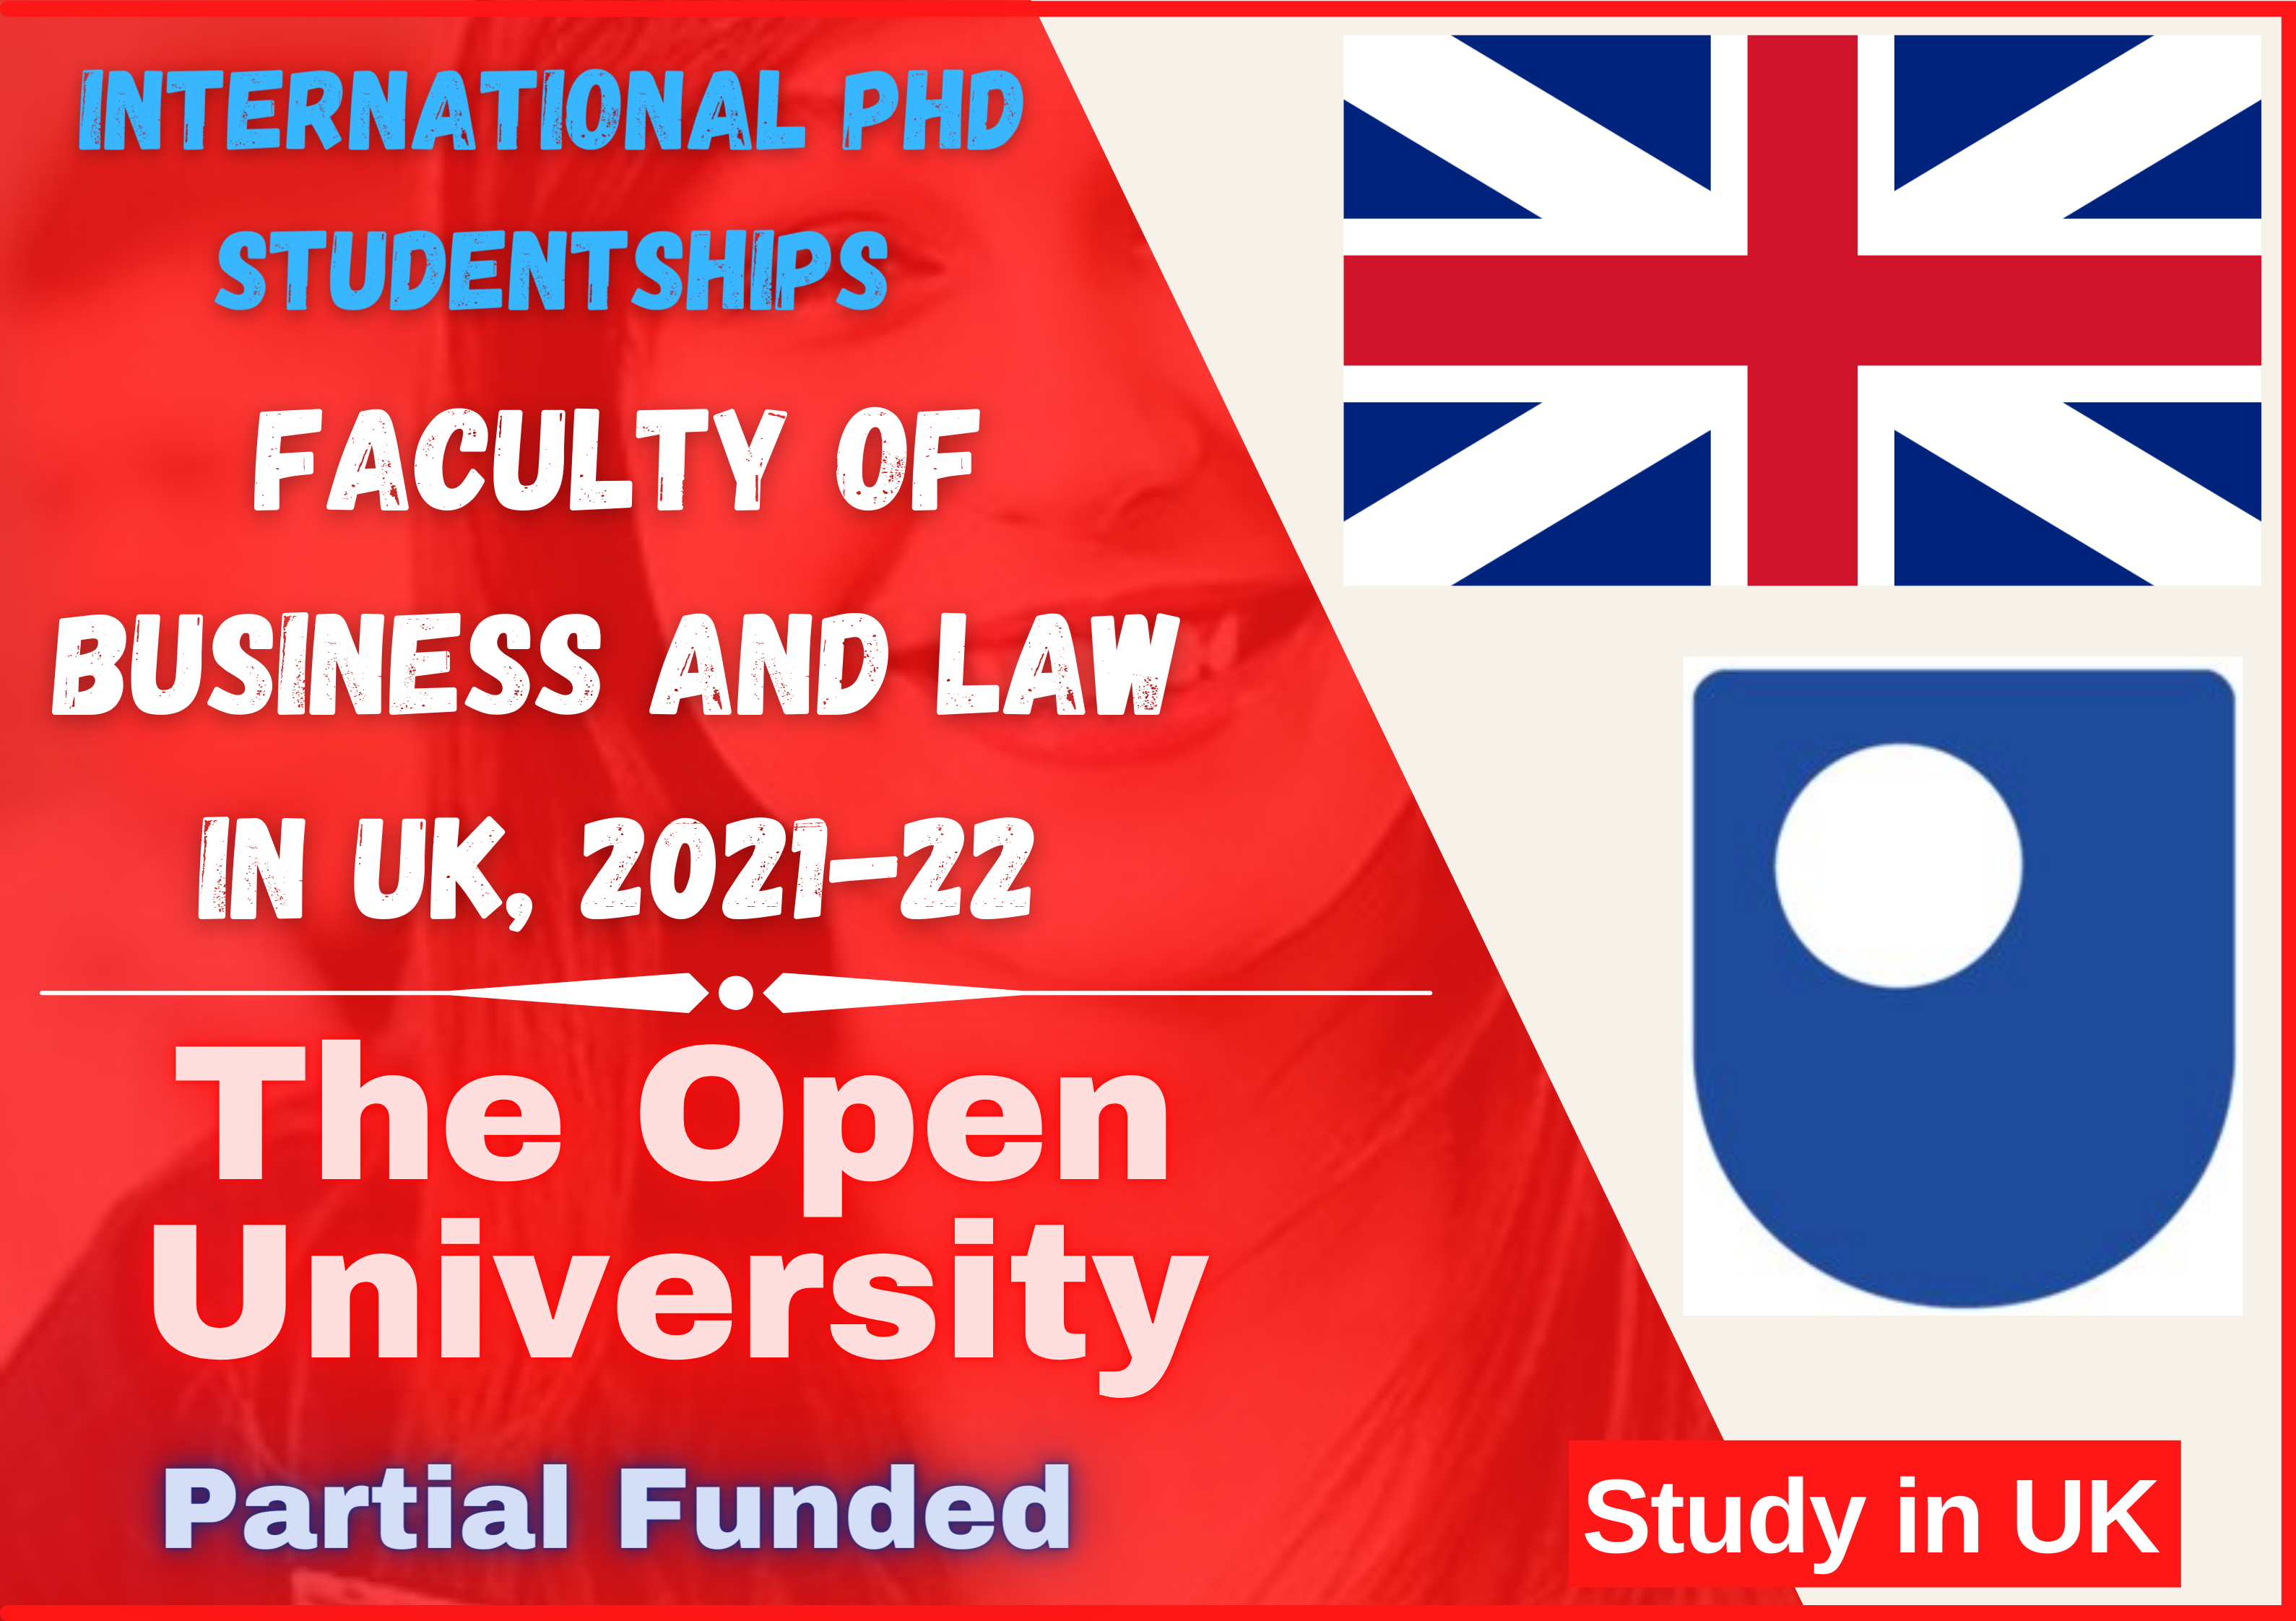 International PhD Studentships in Faculty of Business and Law in UK – 2021-22